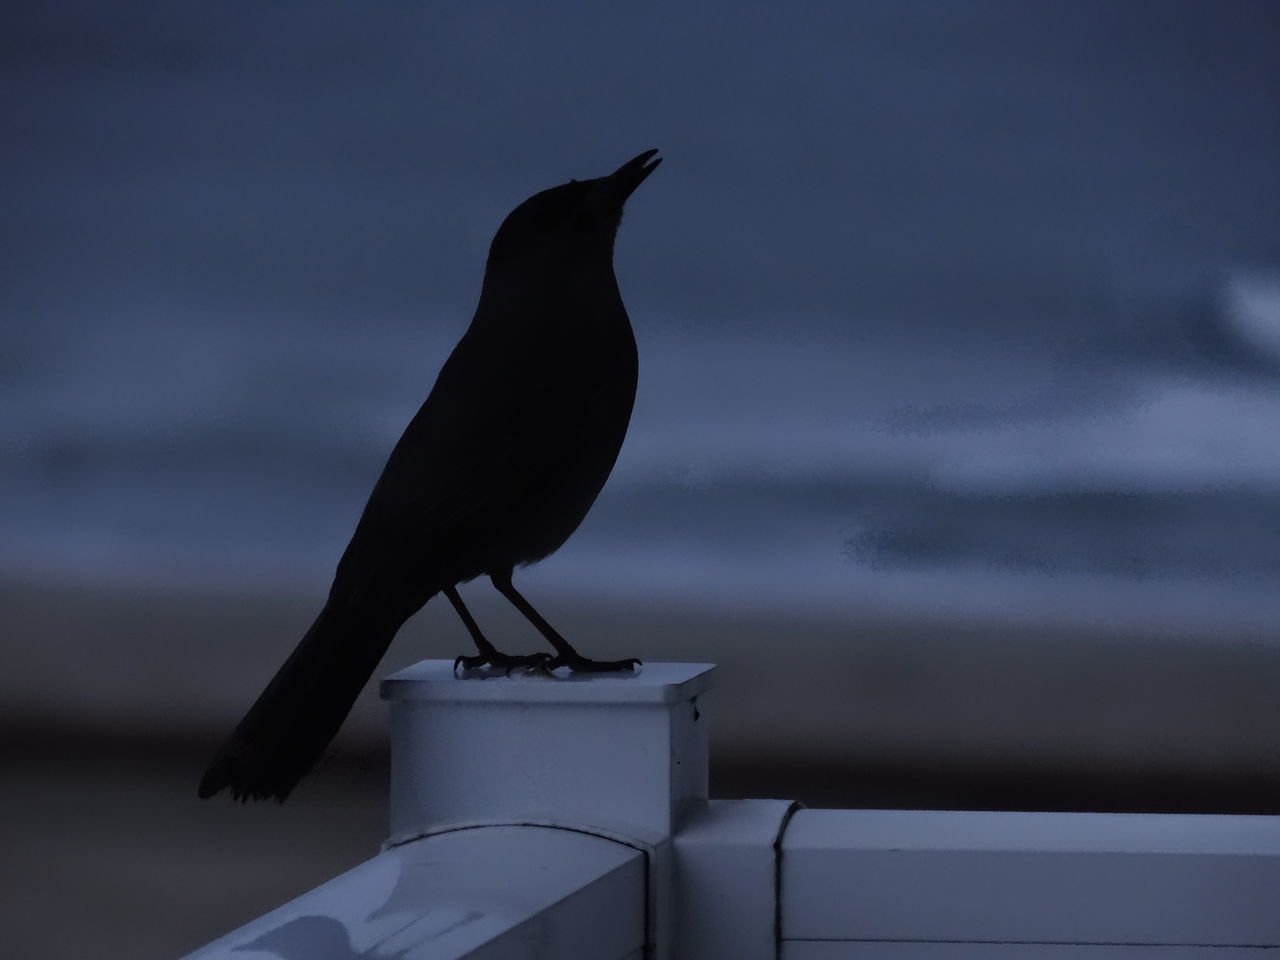 Animal Themes Animal Wildlife Animals In The Wild Bird Blackbird Day Dusk Dusk Sky Nature No People One Animal Outdoors Perching Railing Raven - Bird Shoreline Silhouette Sky Waterfront